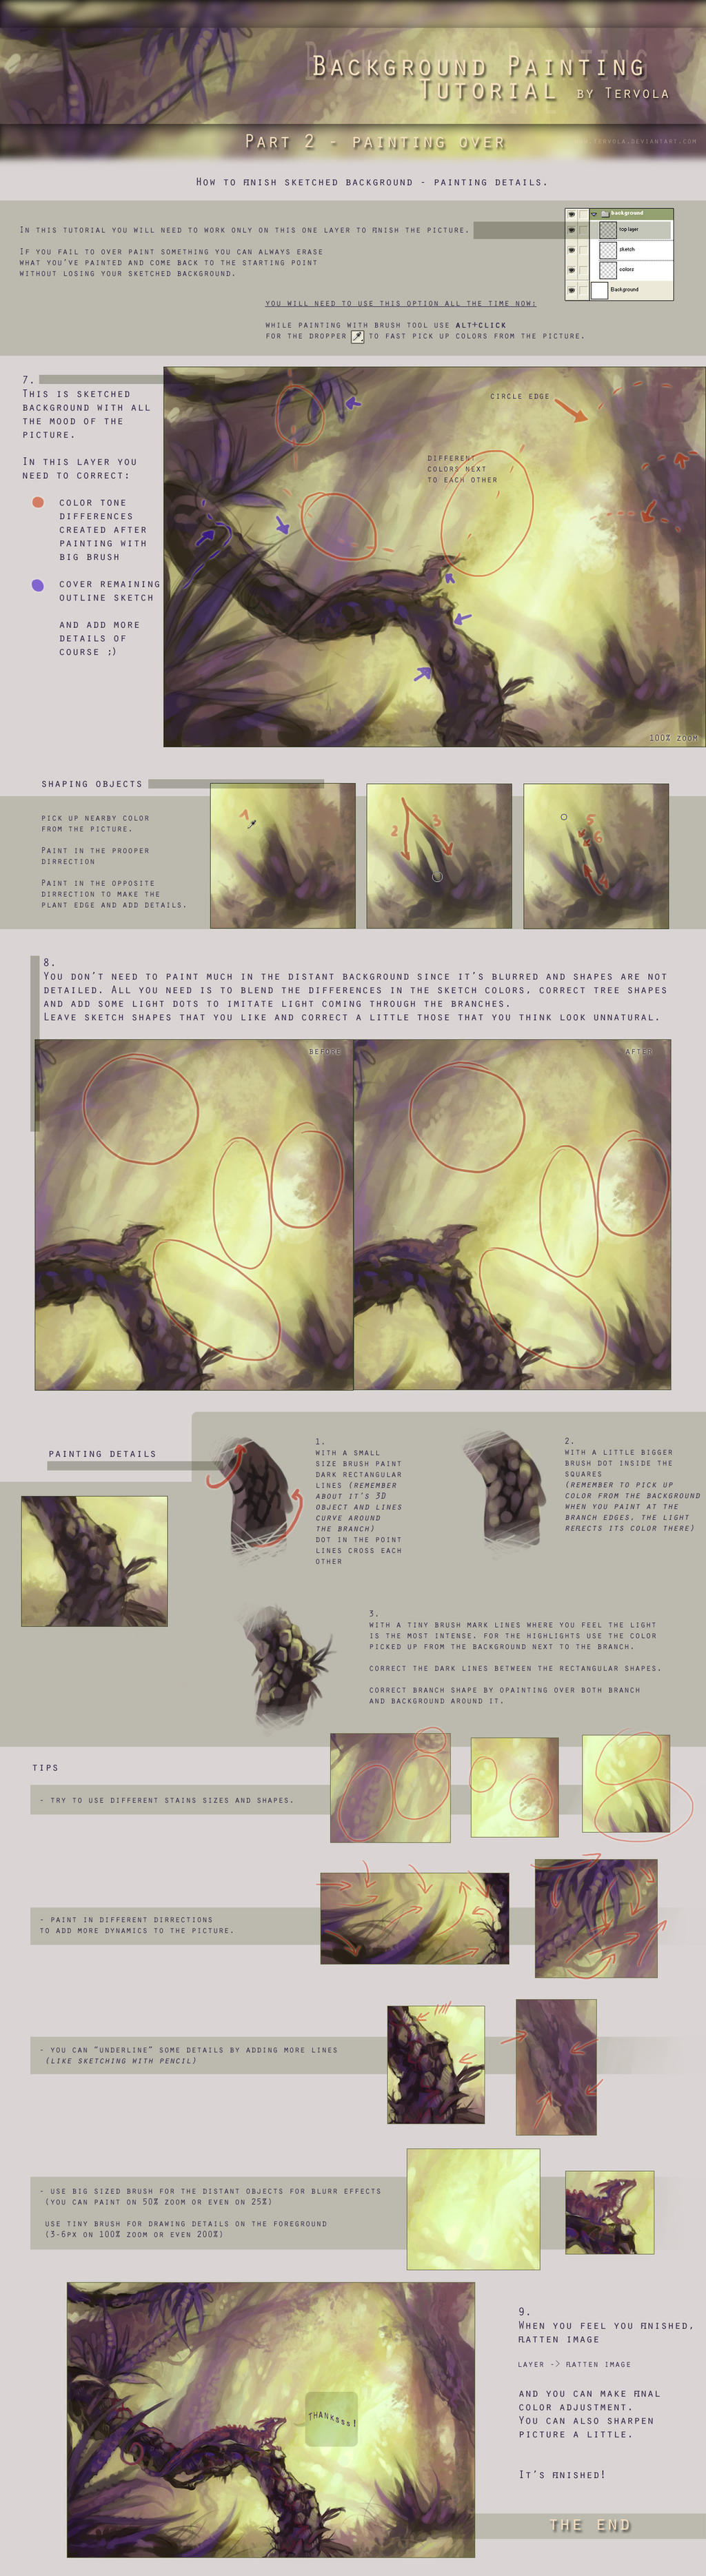 Background Tutorial 2 by Tervola on DeviantArt